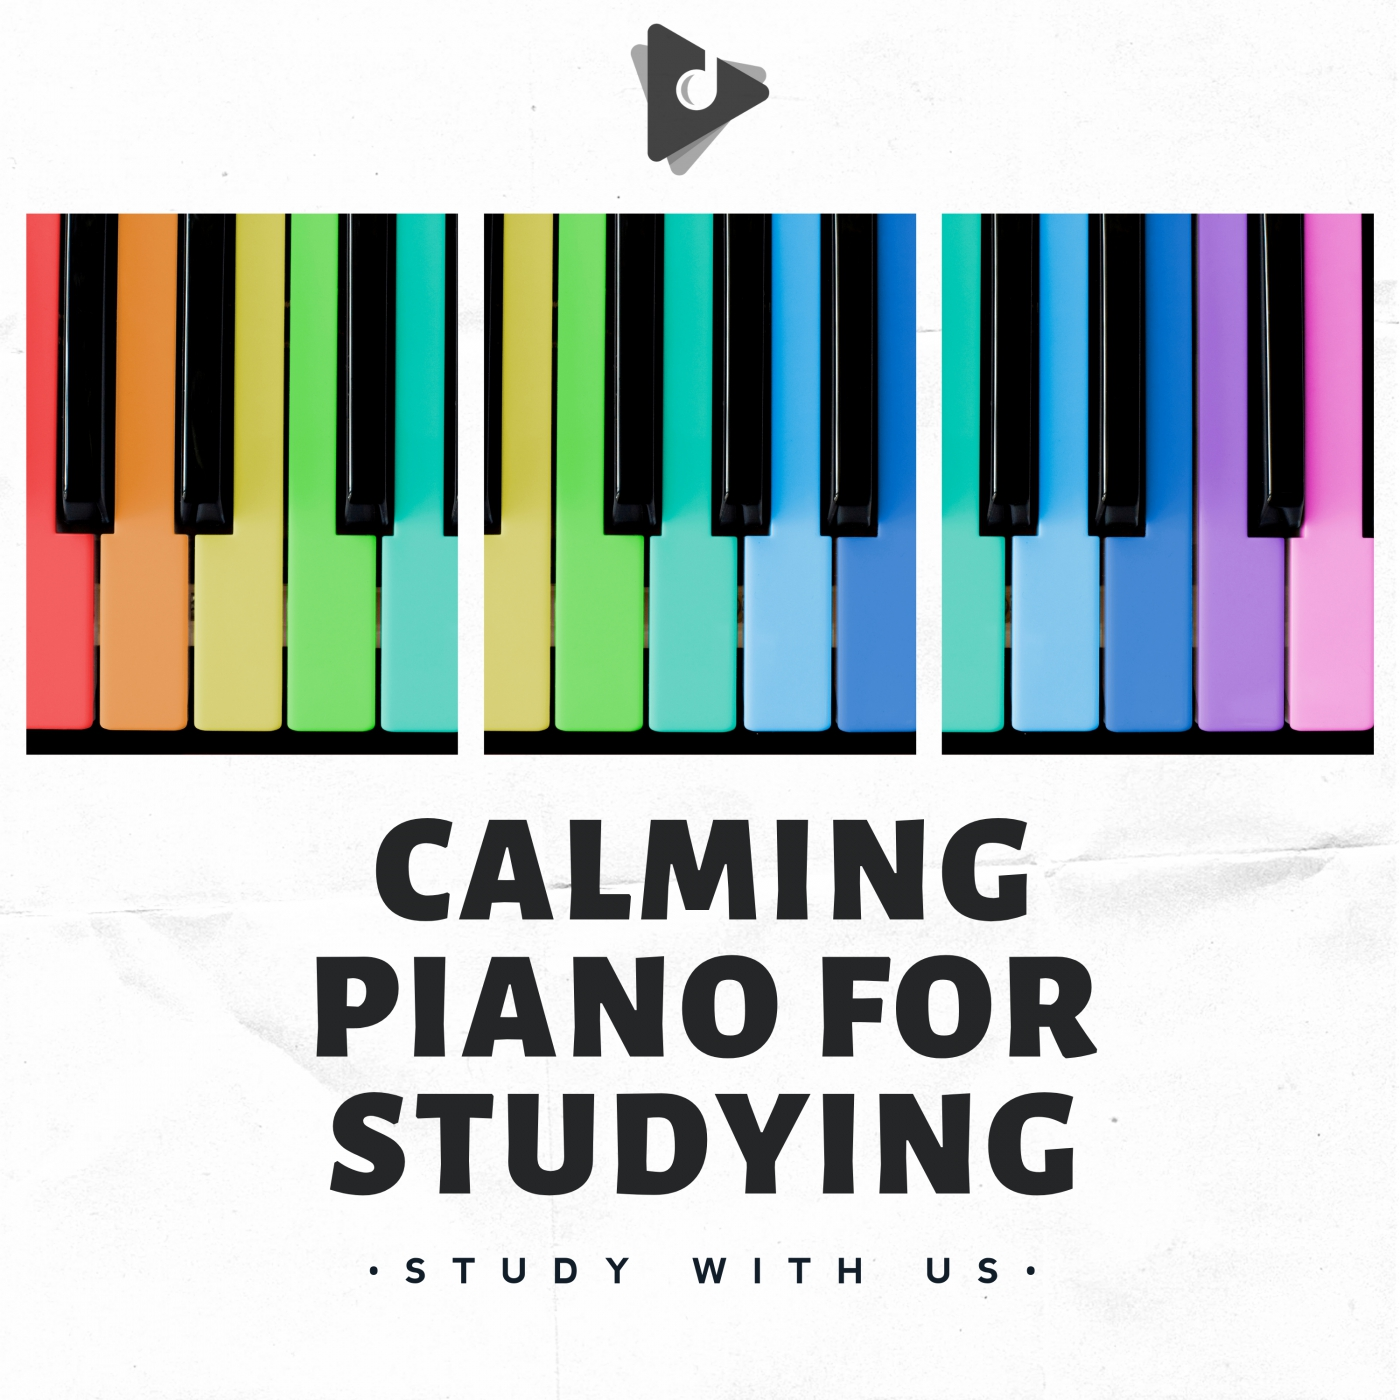 Calming Piano for Studying